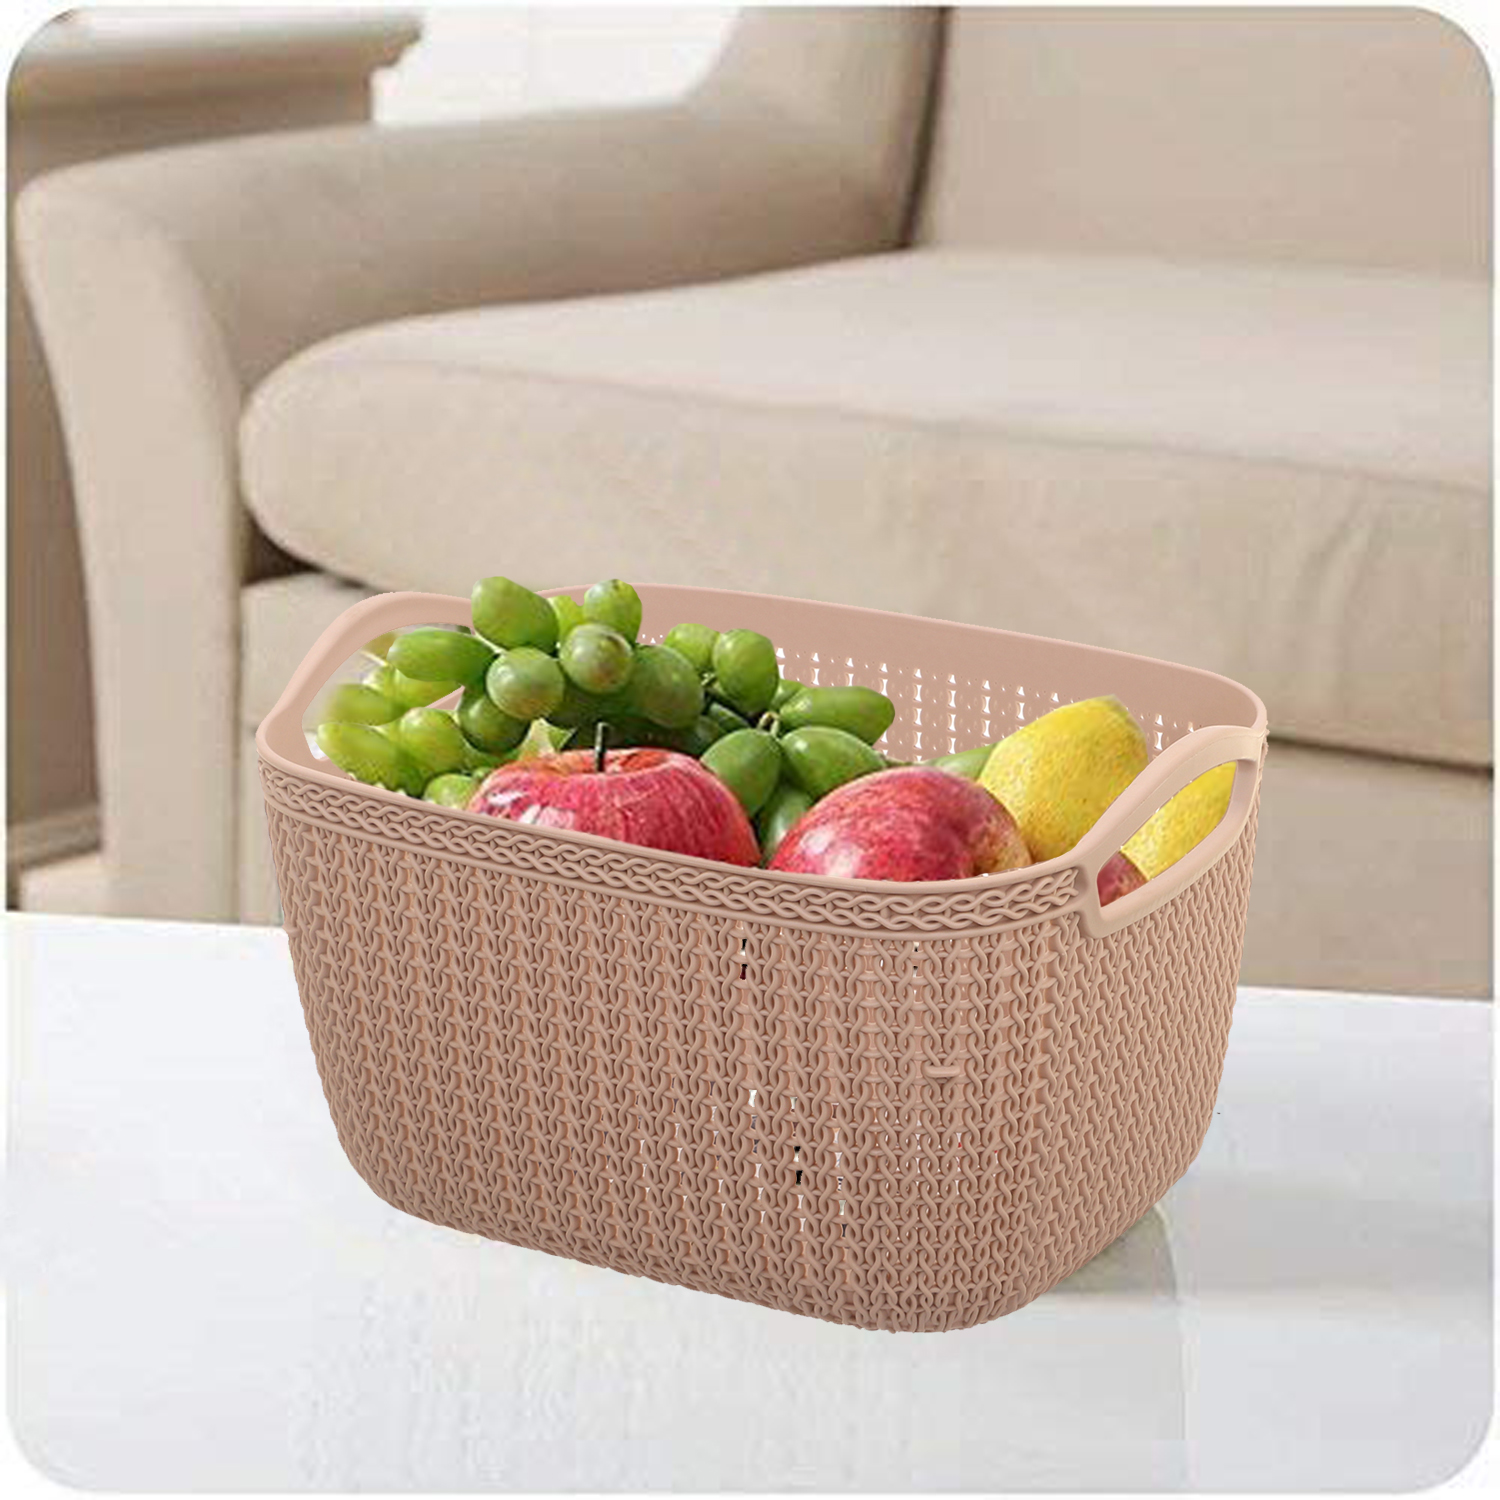 Kuber Industries Unbreakable Plastic 3 Pieces Multipurpose Large Size Flexible Storage Baskets/Fruit Vegetable Kitchen Organizer with Handles (peach) - CTKTC30620